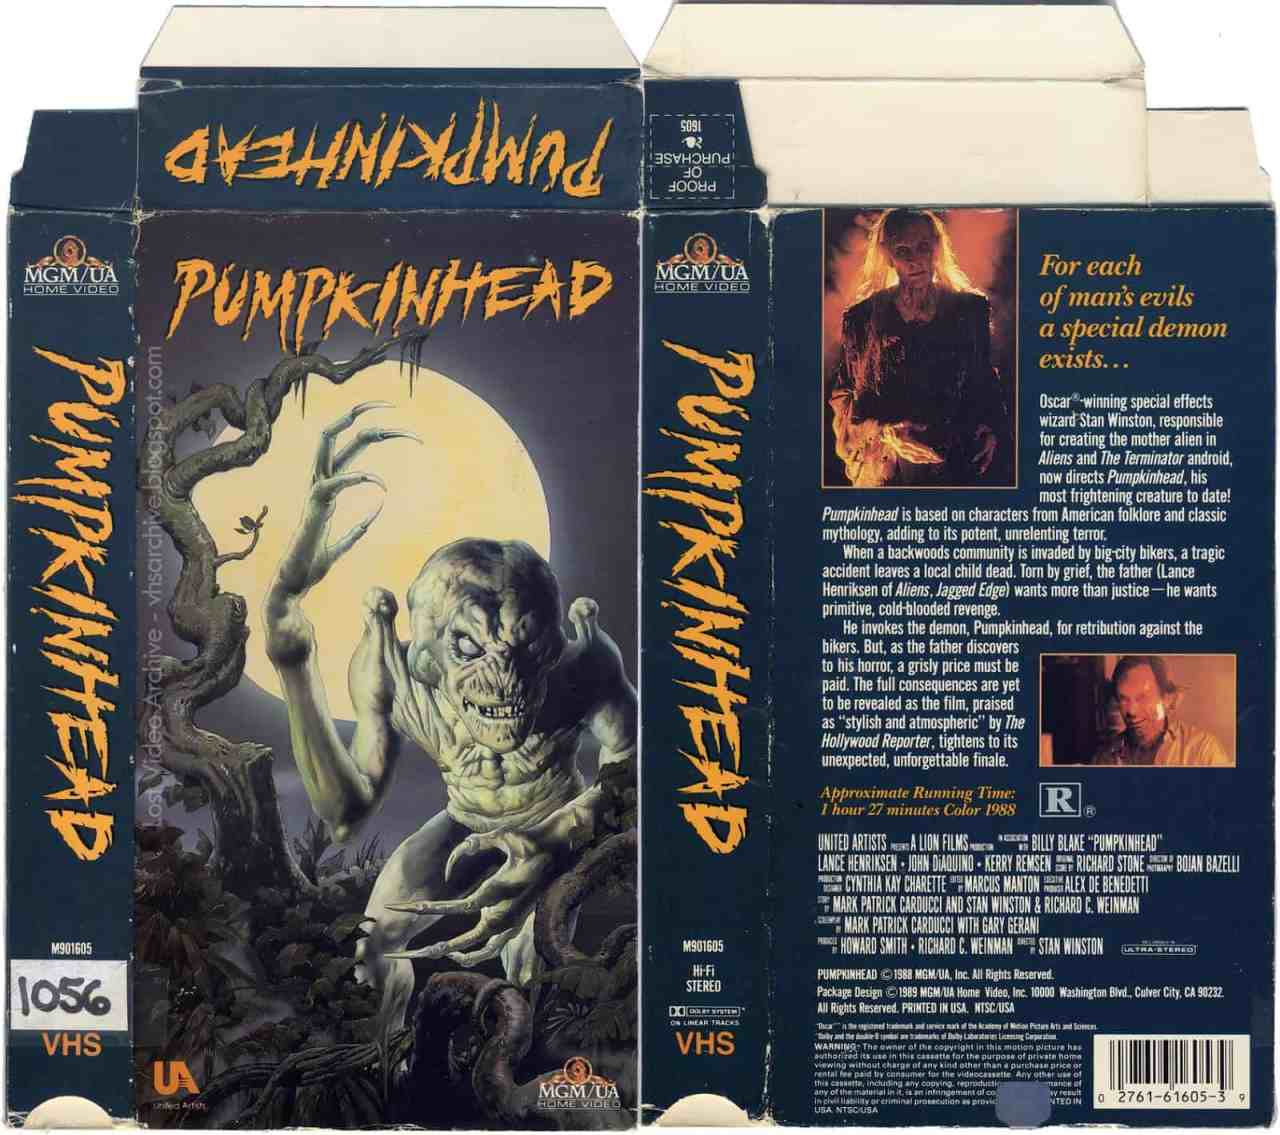 pumpkinhead-vhs-box